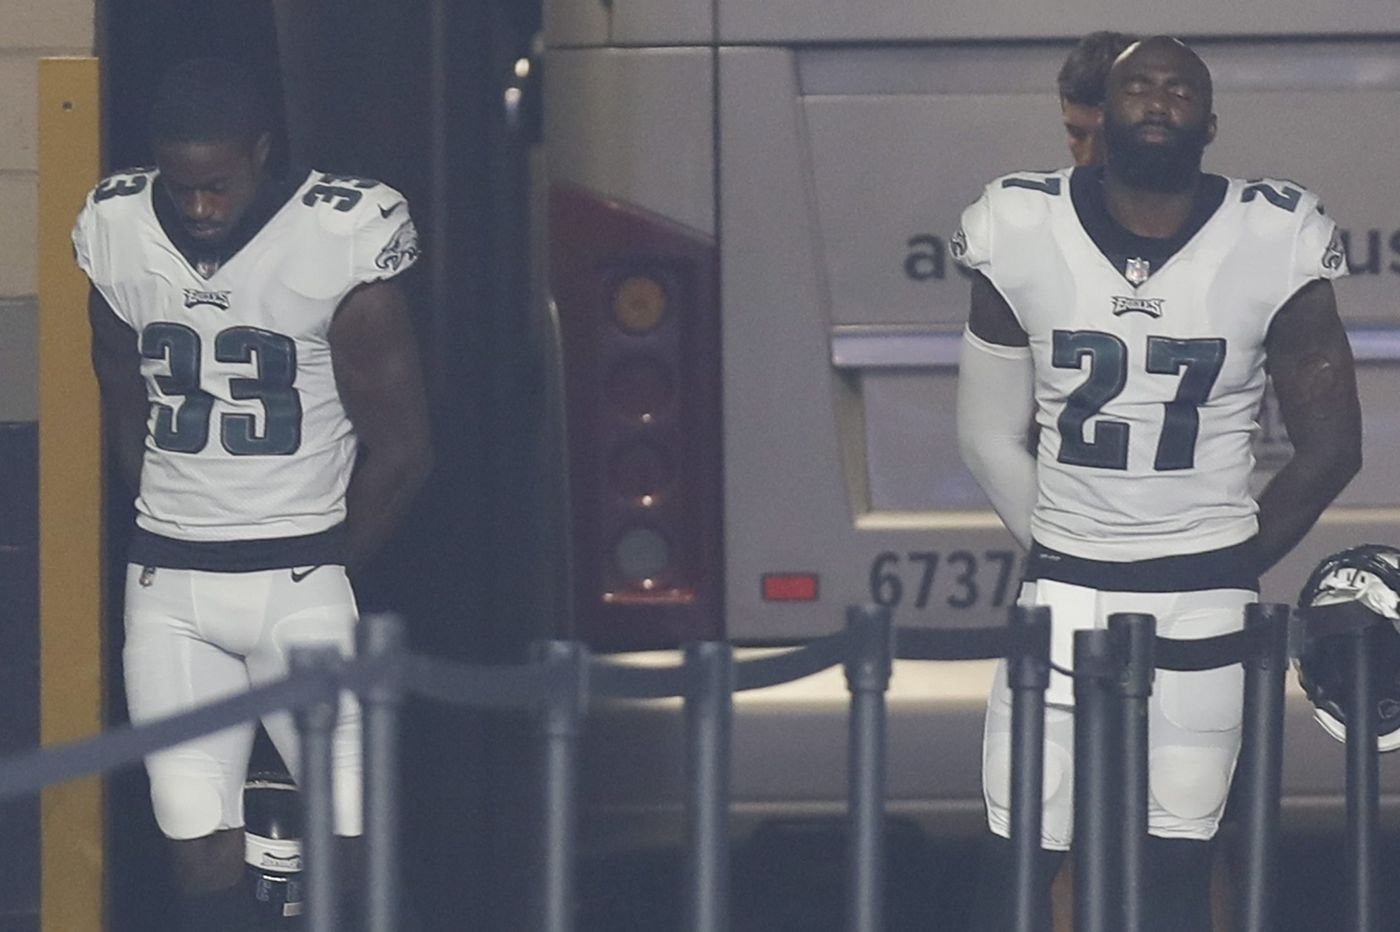 Malcolm Jenkins, Michael Bennett, De'Vante Bausby wait to take field instead of protesting during national anthem